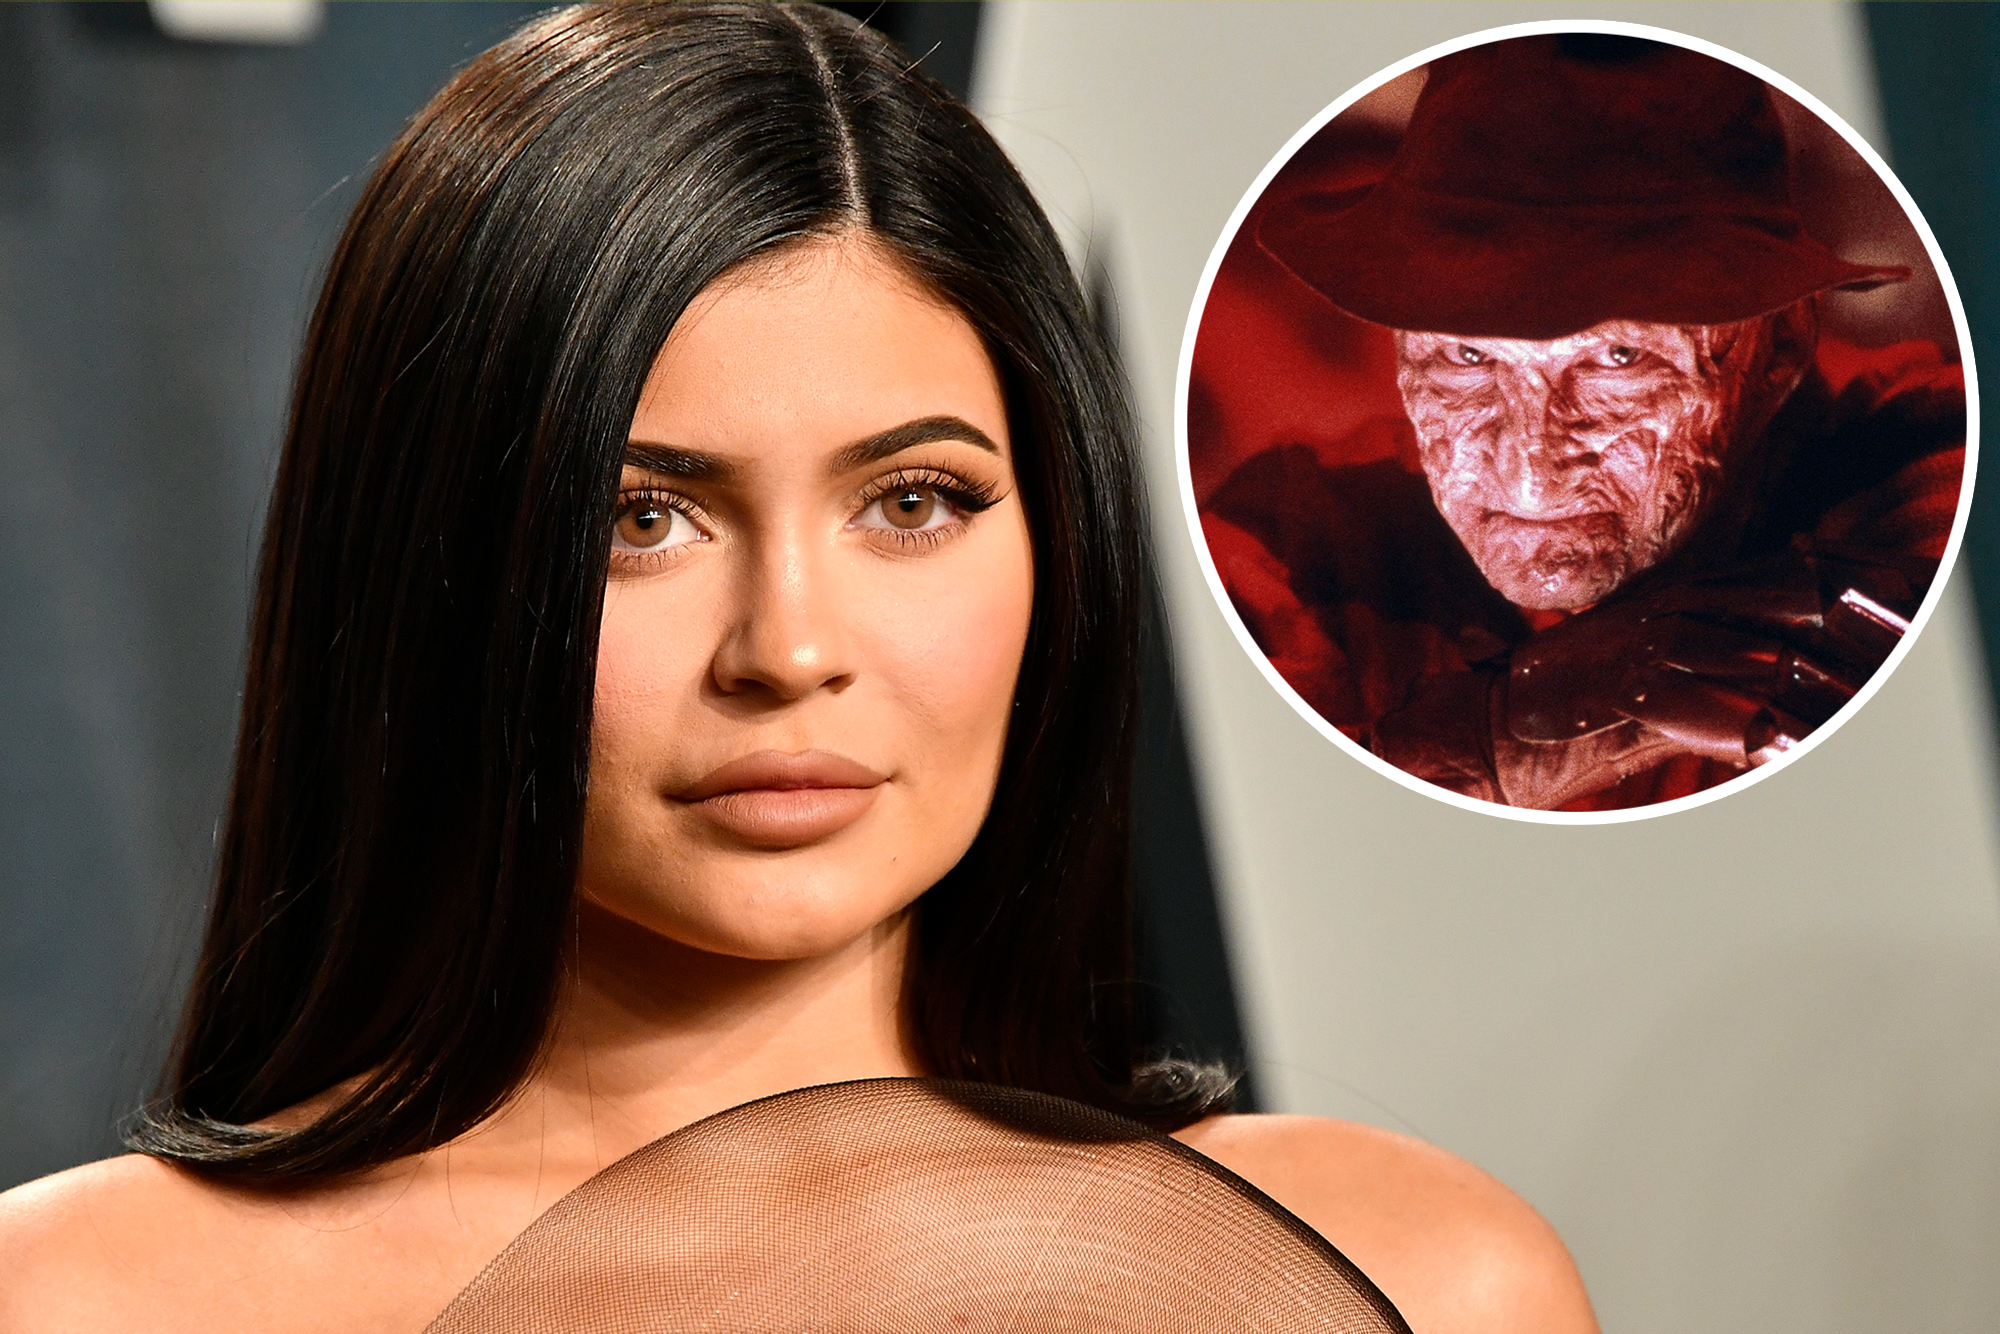 Kylie Jenner Is Launching A Nightmare On Elm Street Makeup Line